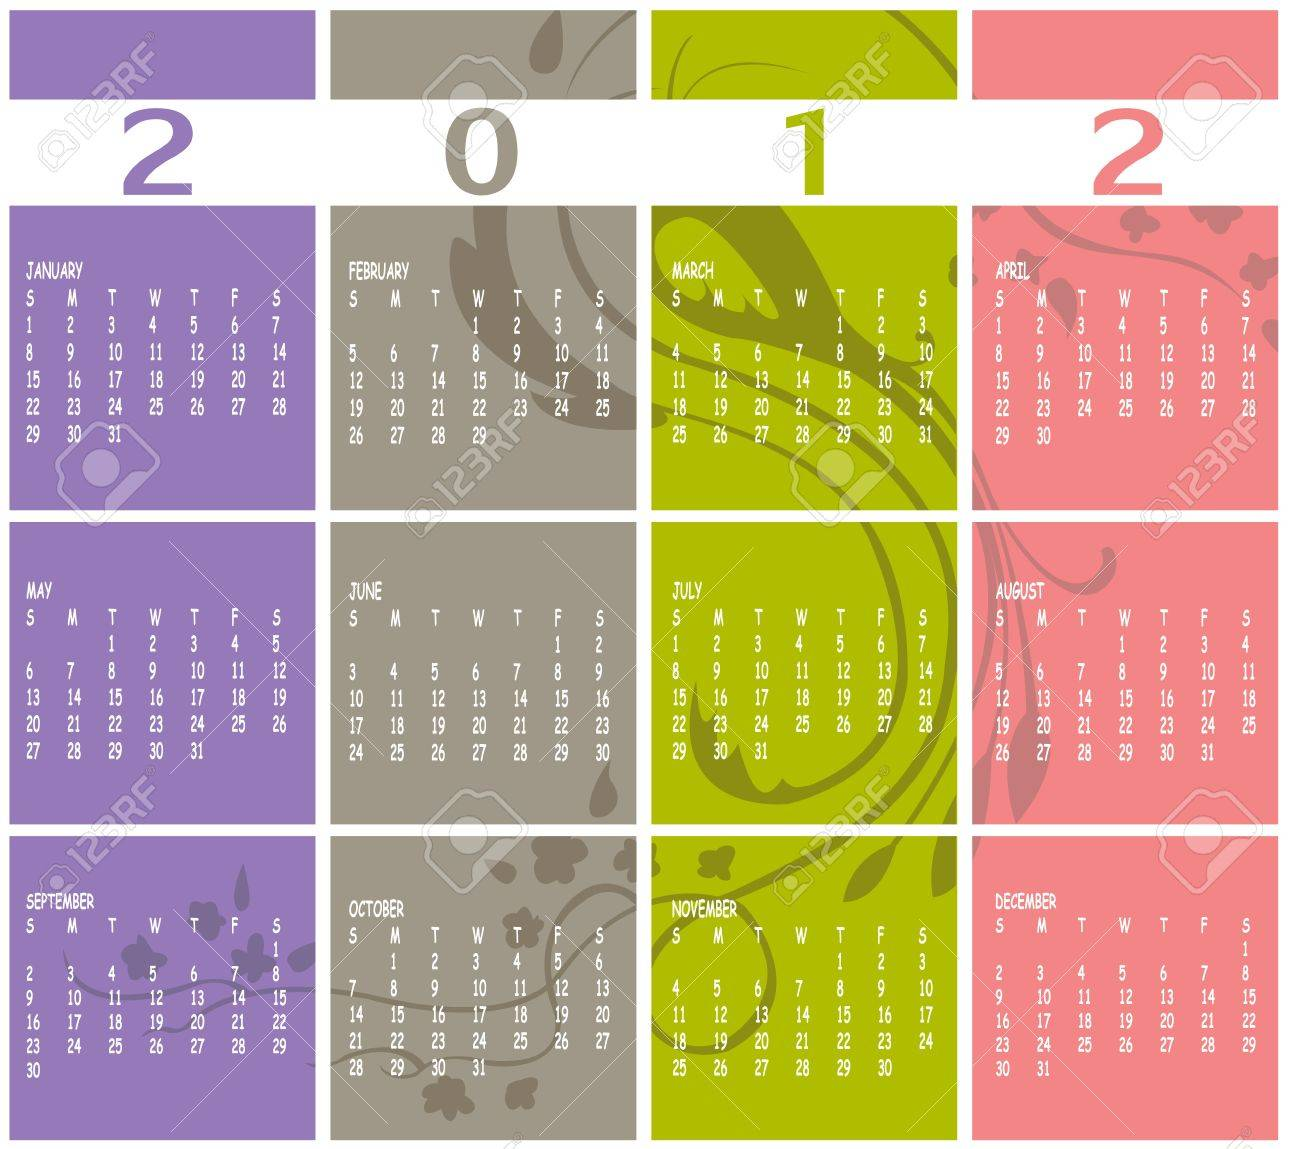 Illustration of style design Colorful Calendar for 2012 Stock Vector - 11412461